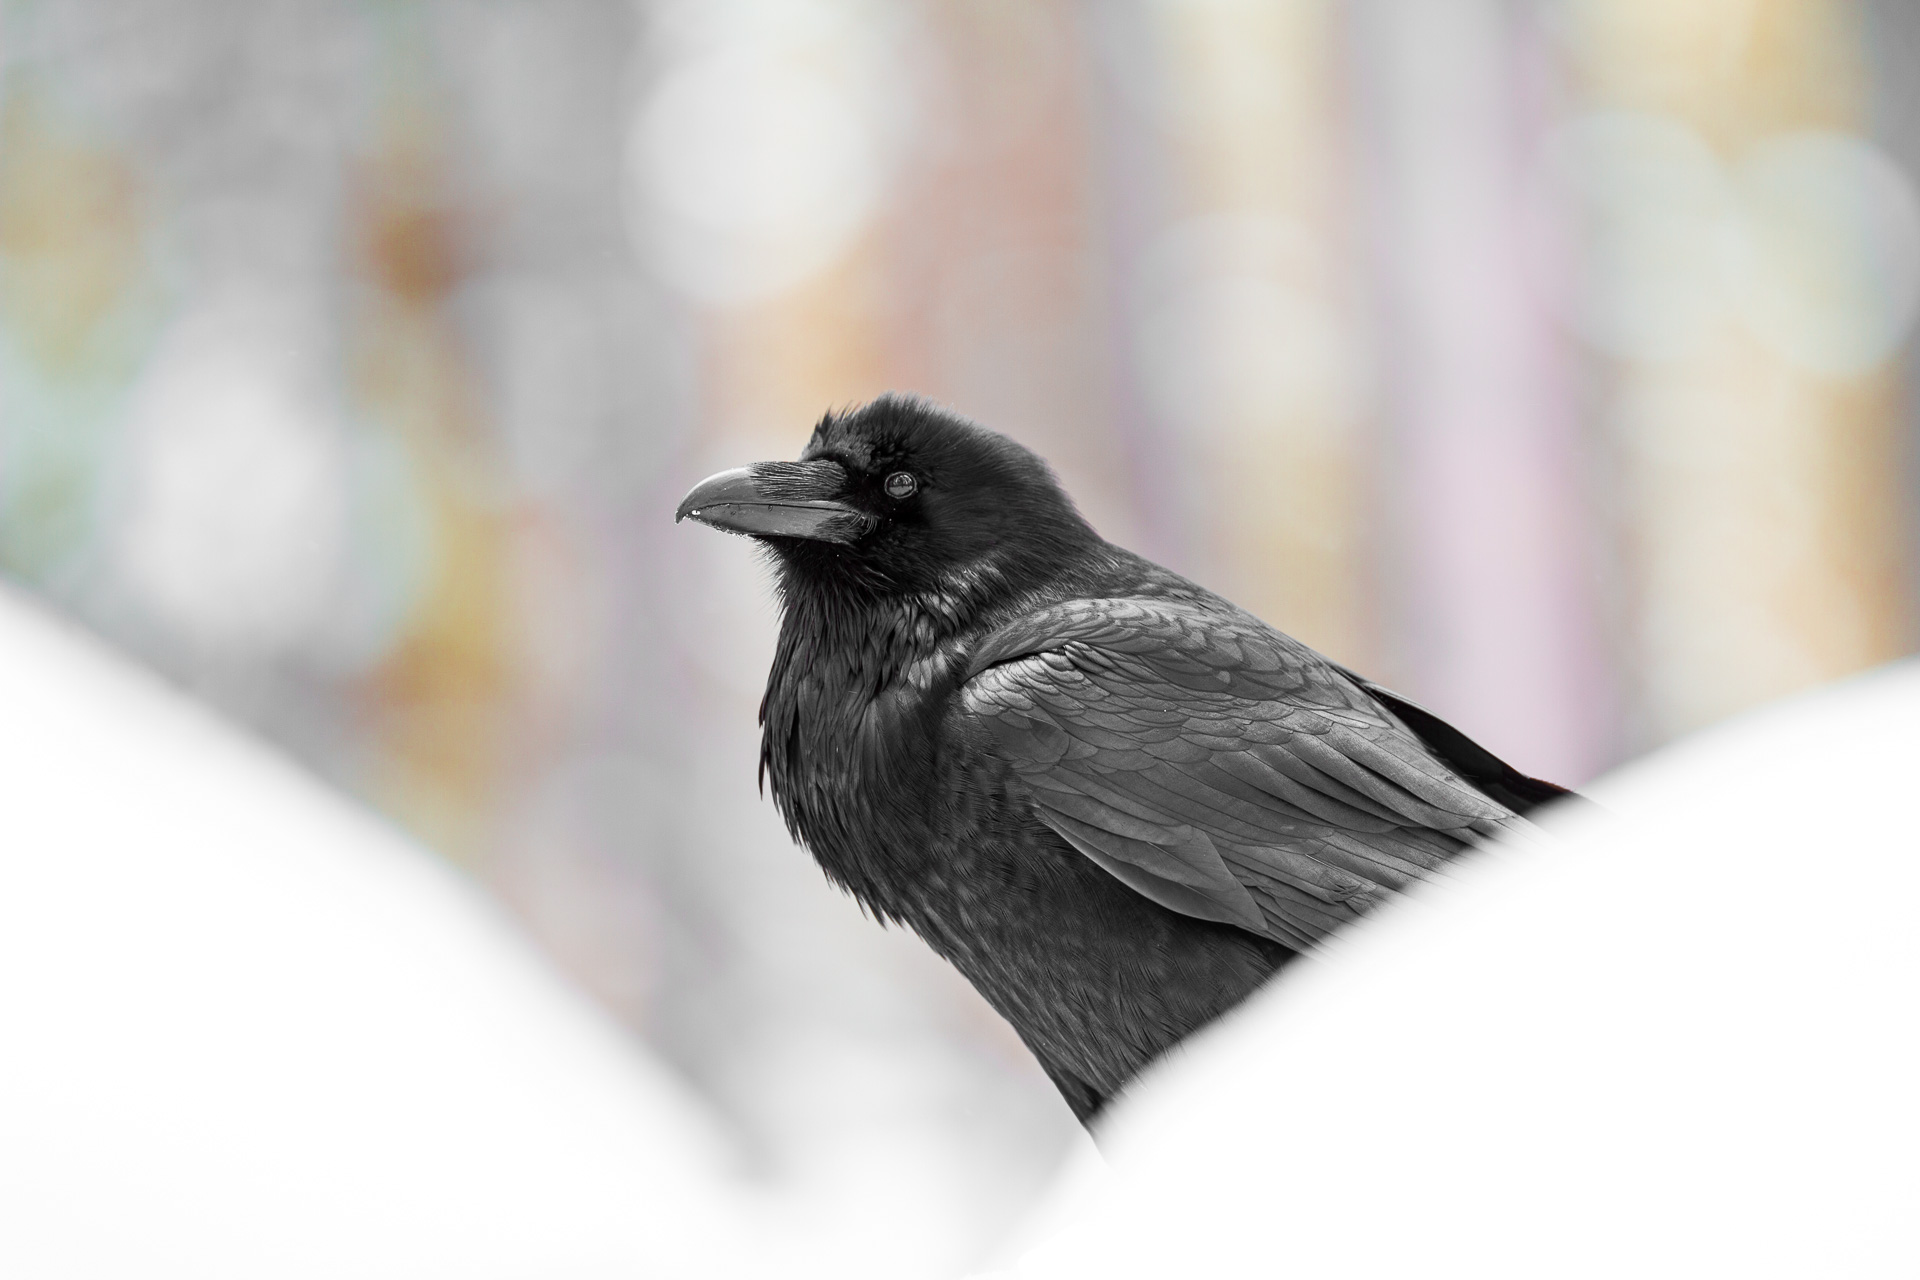 Common Raven snow rainbow background Canon 200mm f2 lens Yellowstone National Park WY Sparky Stensaas-0353